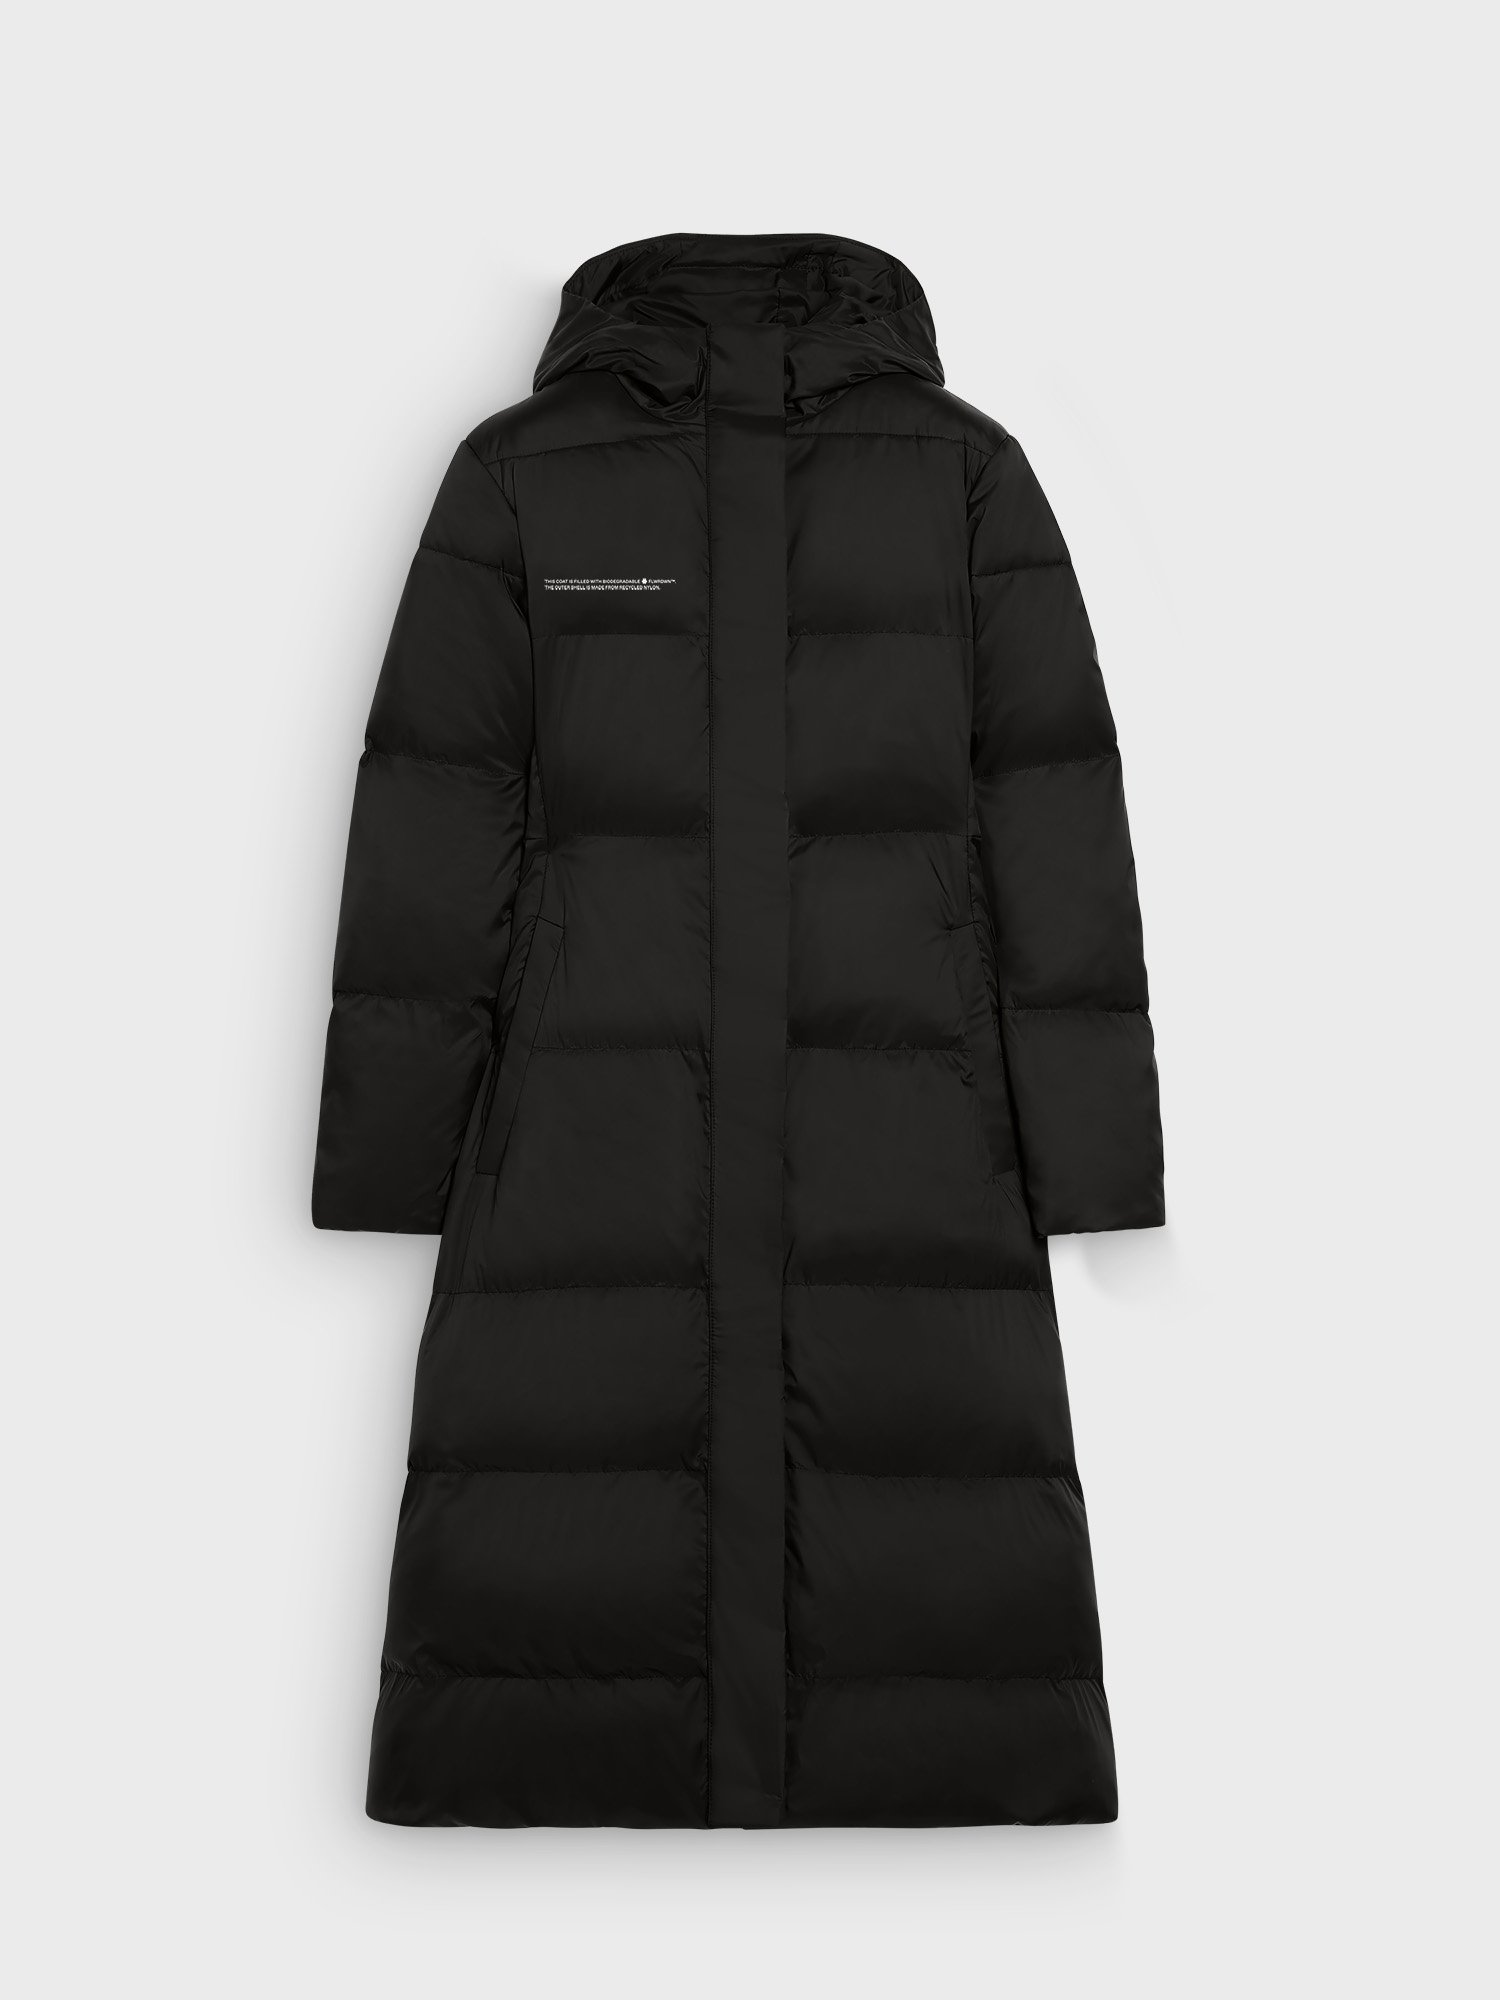 FLWRDWN™ fitted long puffer jacket